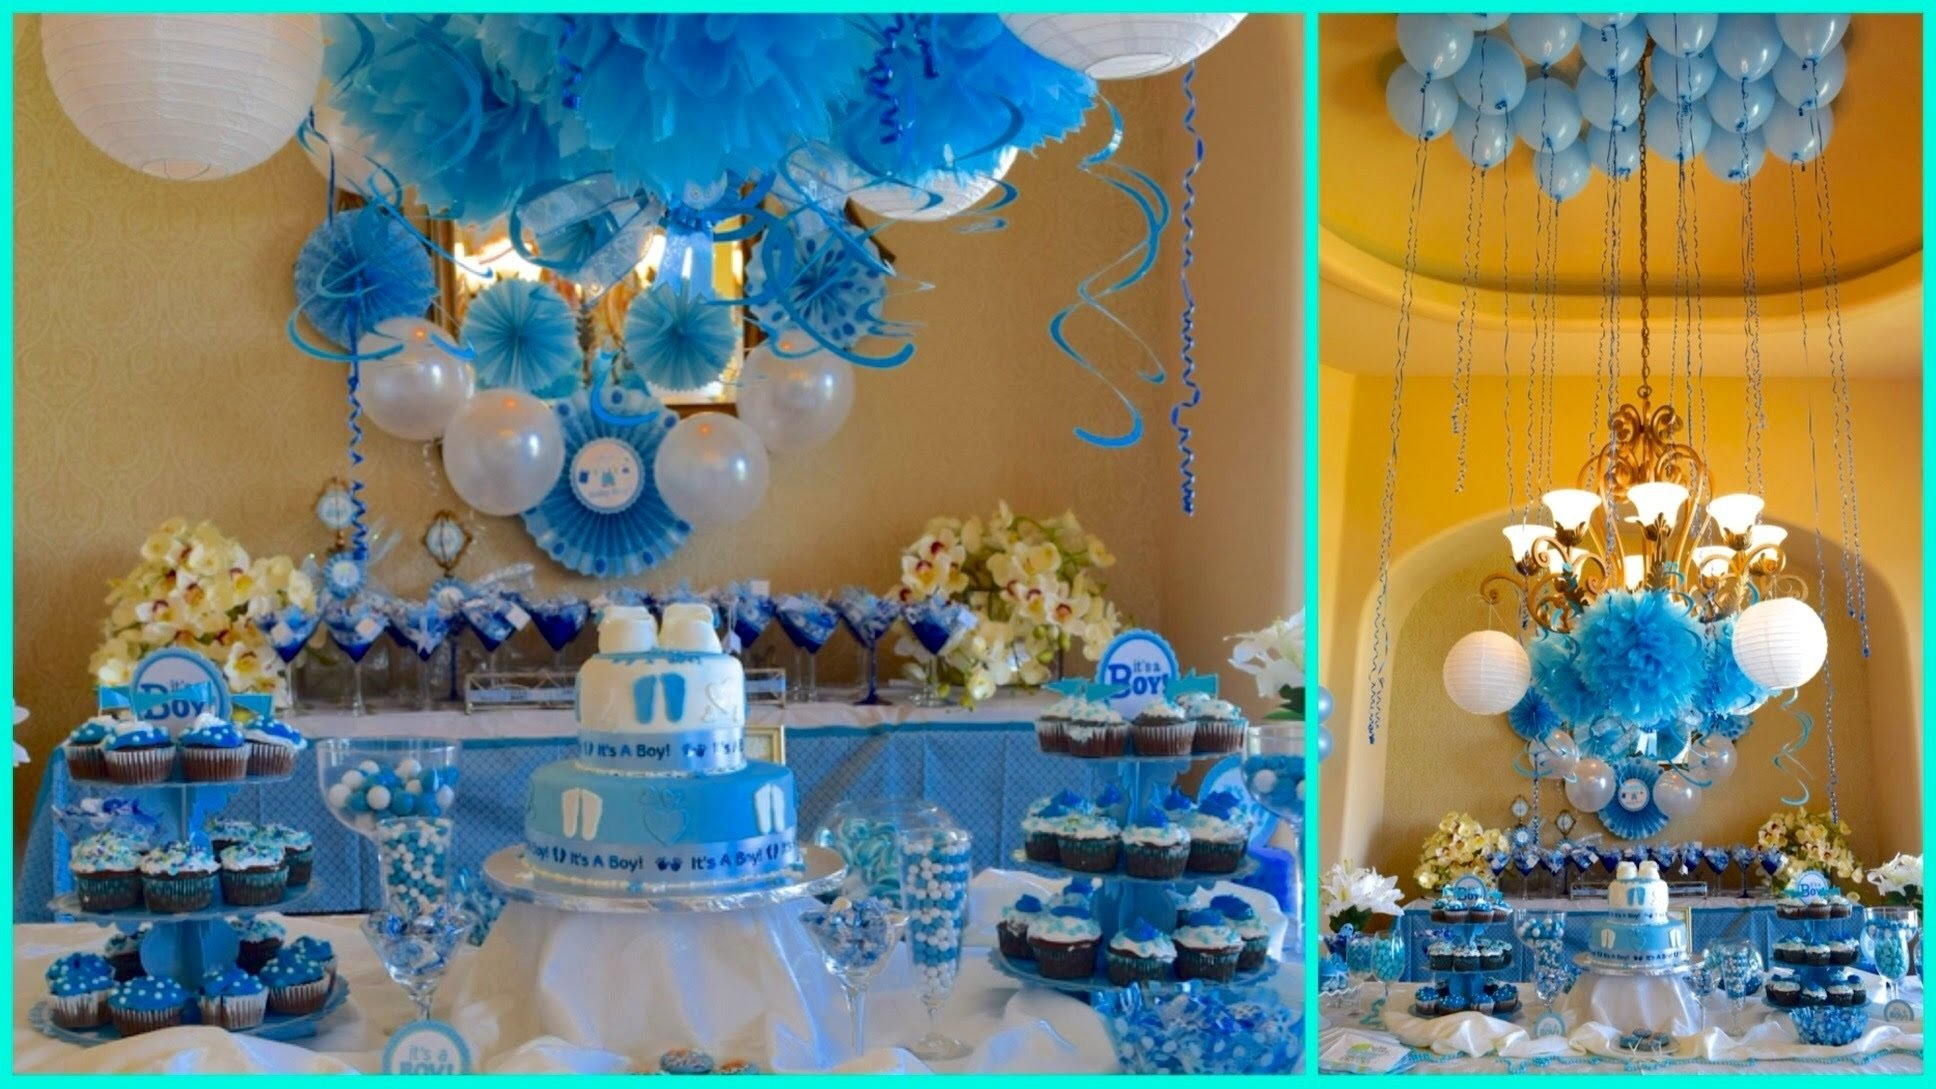 10 Great Ideas For Baby Boy Shower baby shower ideas for boy blue theme youtube 27 2021